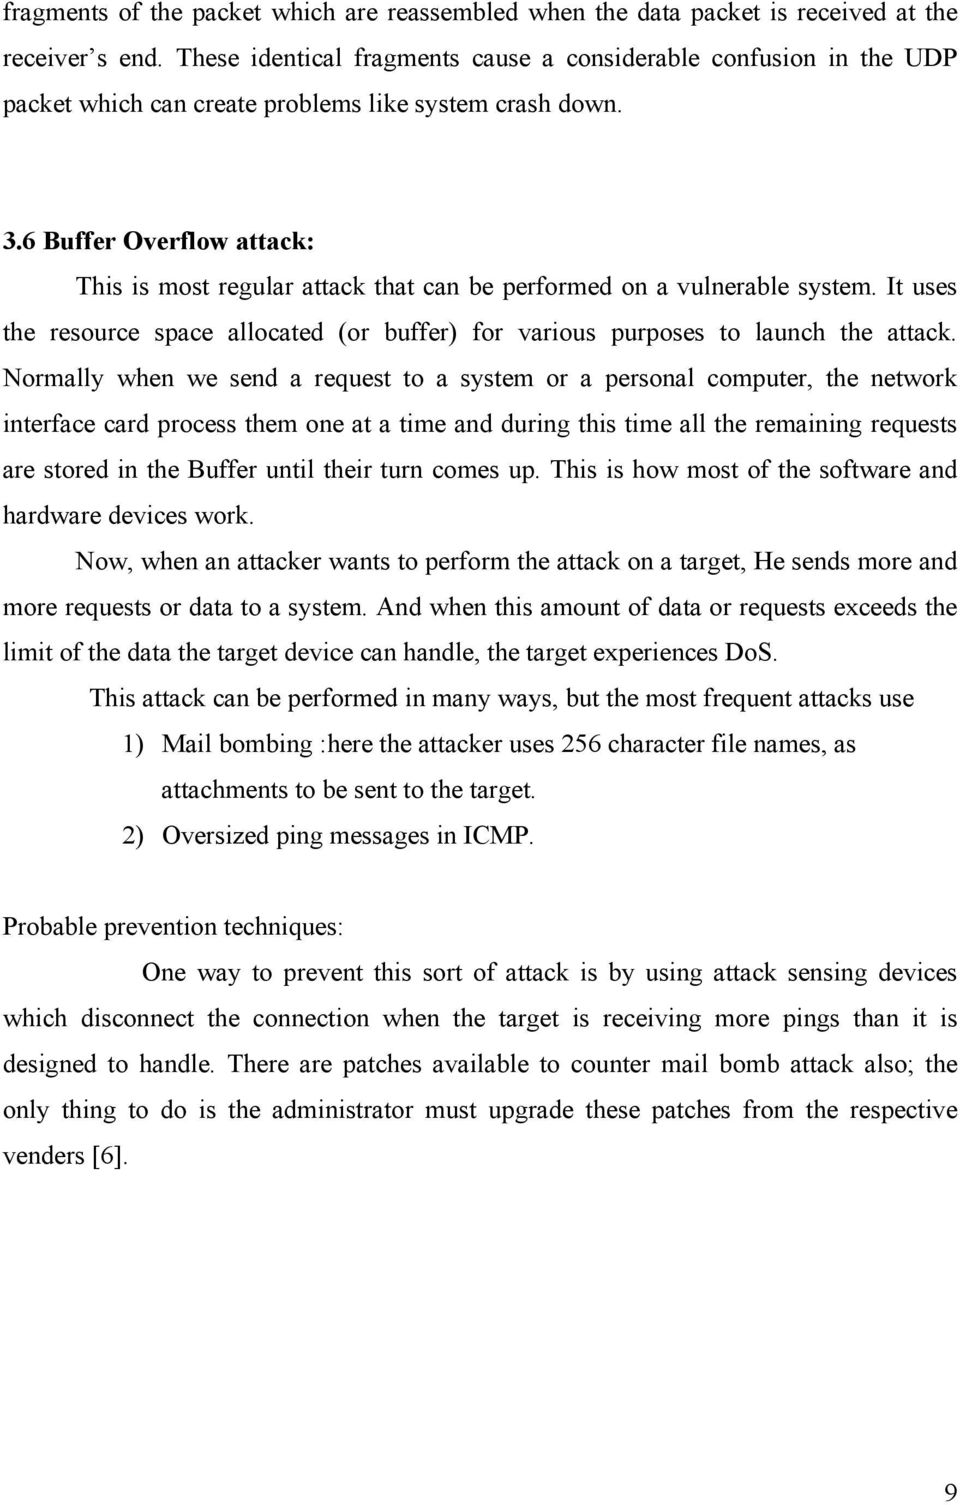 6 Buffer Overflow attack: This is most regular attack that can be performed on a vulnerable system. It uses the resource space allocated (or buffer) for various purposes to launch the attack.